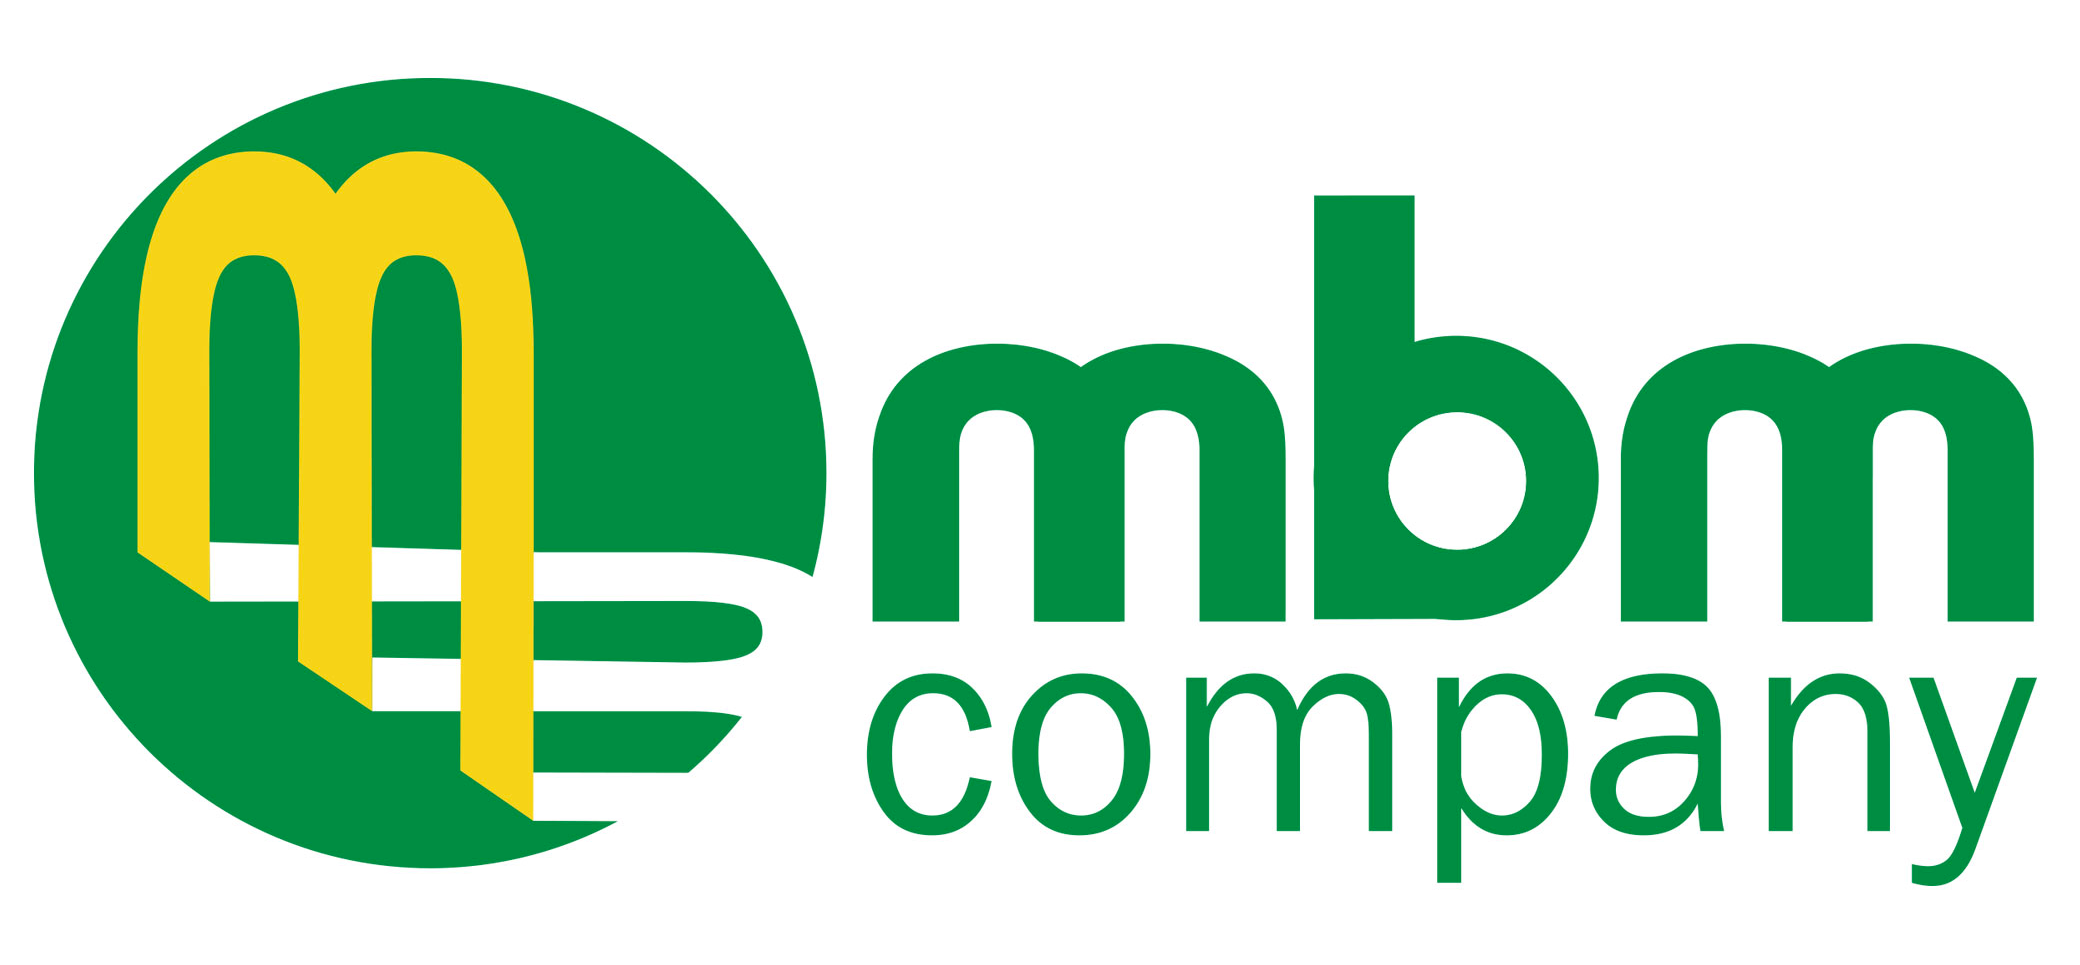 http://erledshipping.com/wp-content/uploads/2019/01/mbm-logo.png